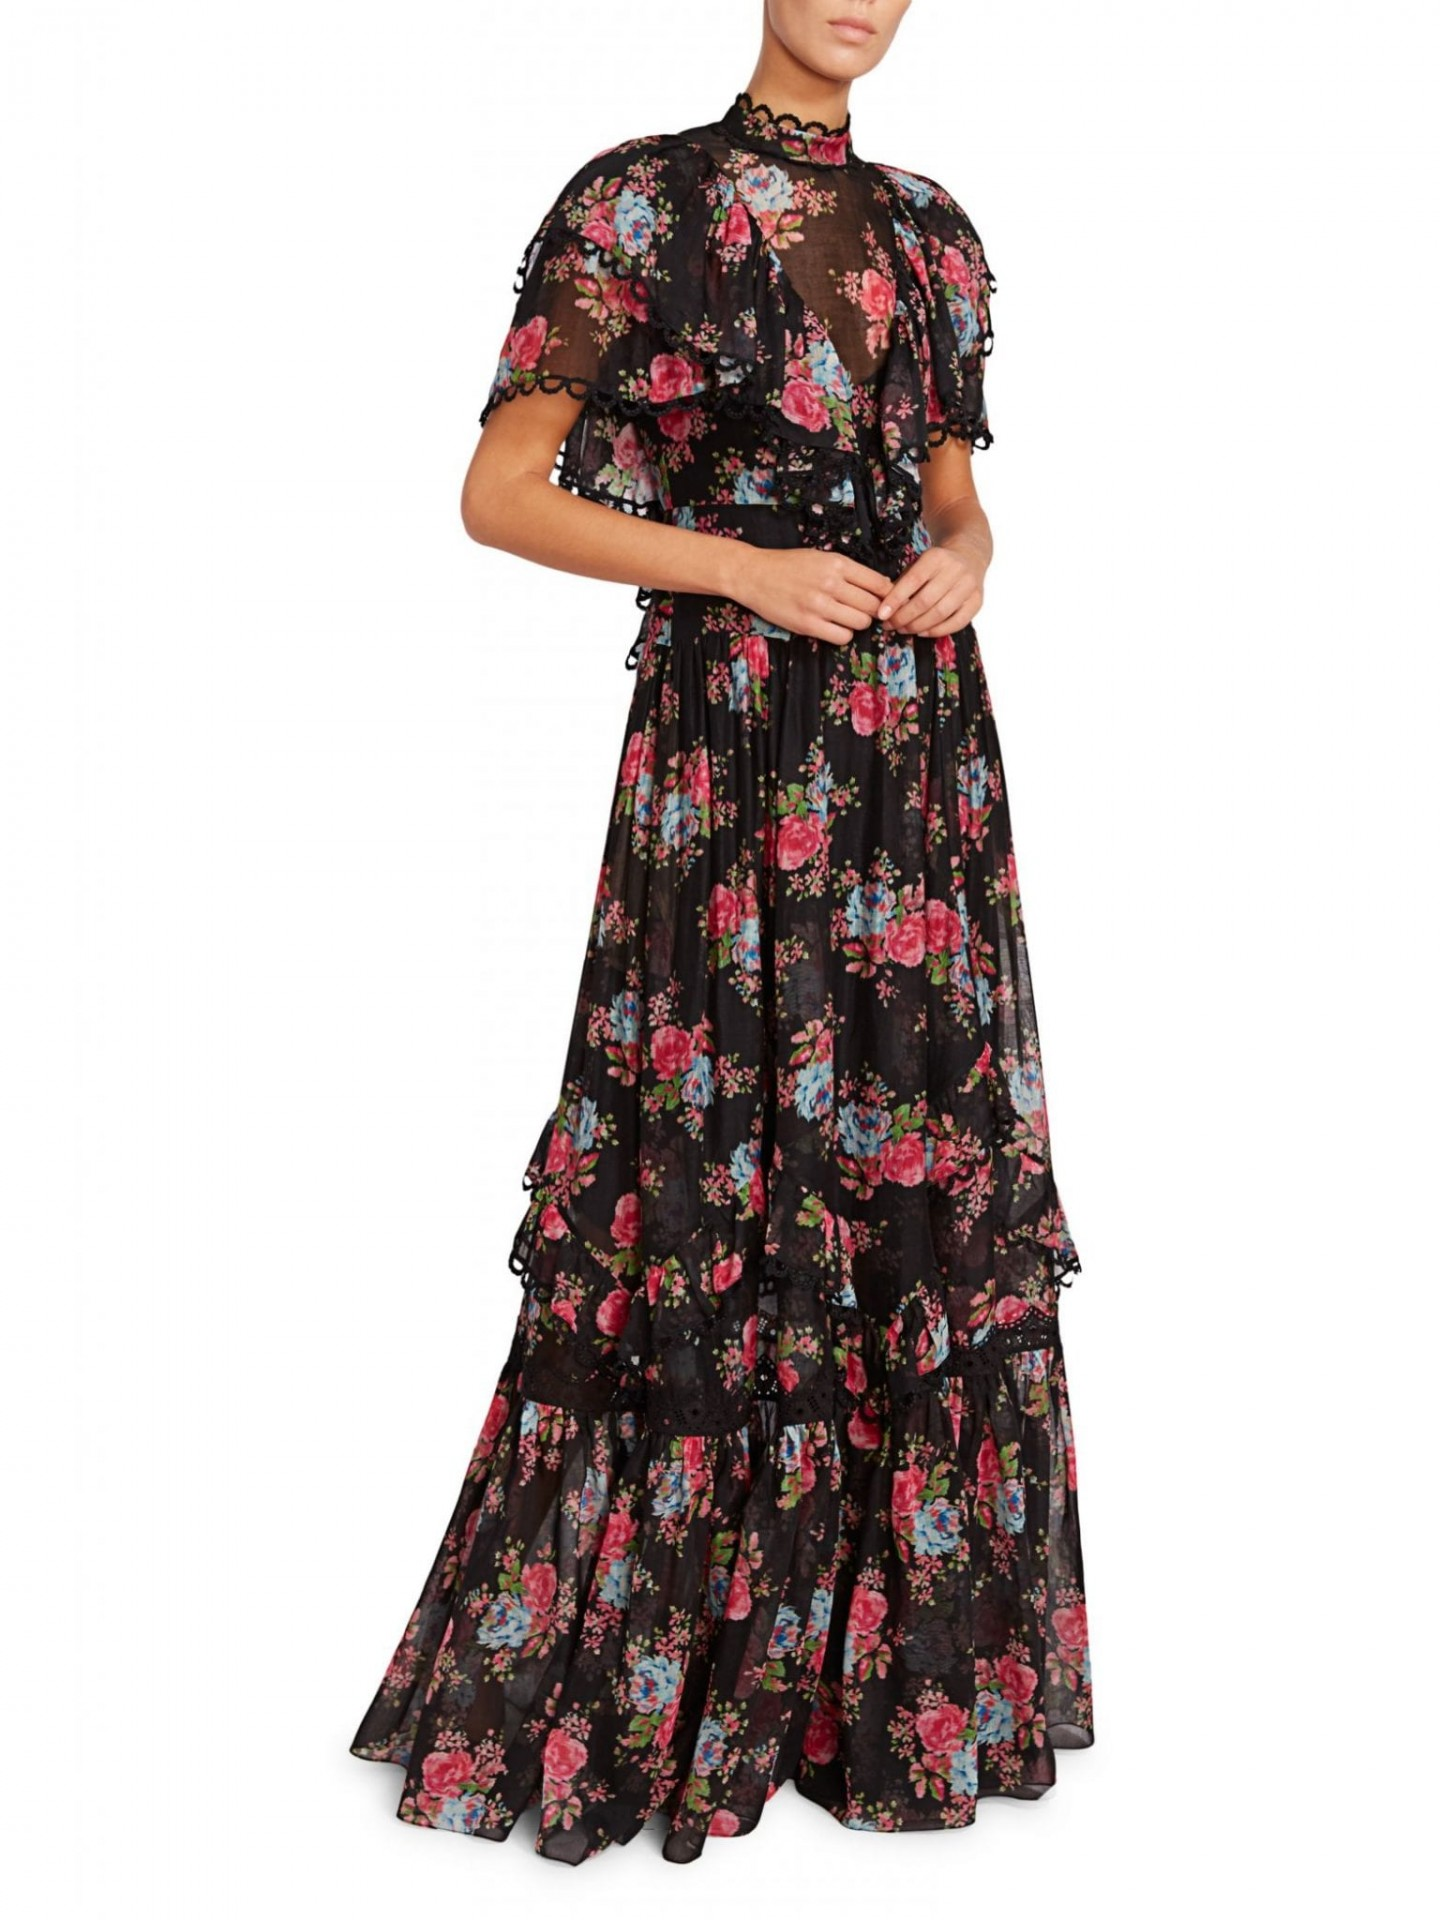 ERDEM Mauricia Tiered Ruffle Floral Gown